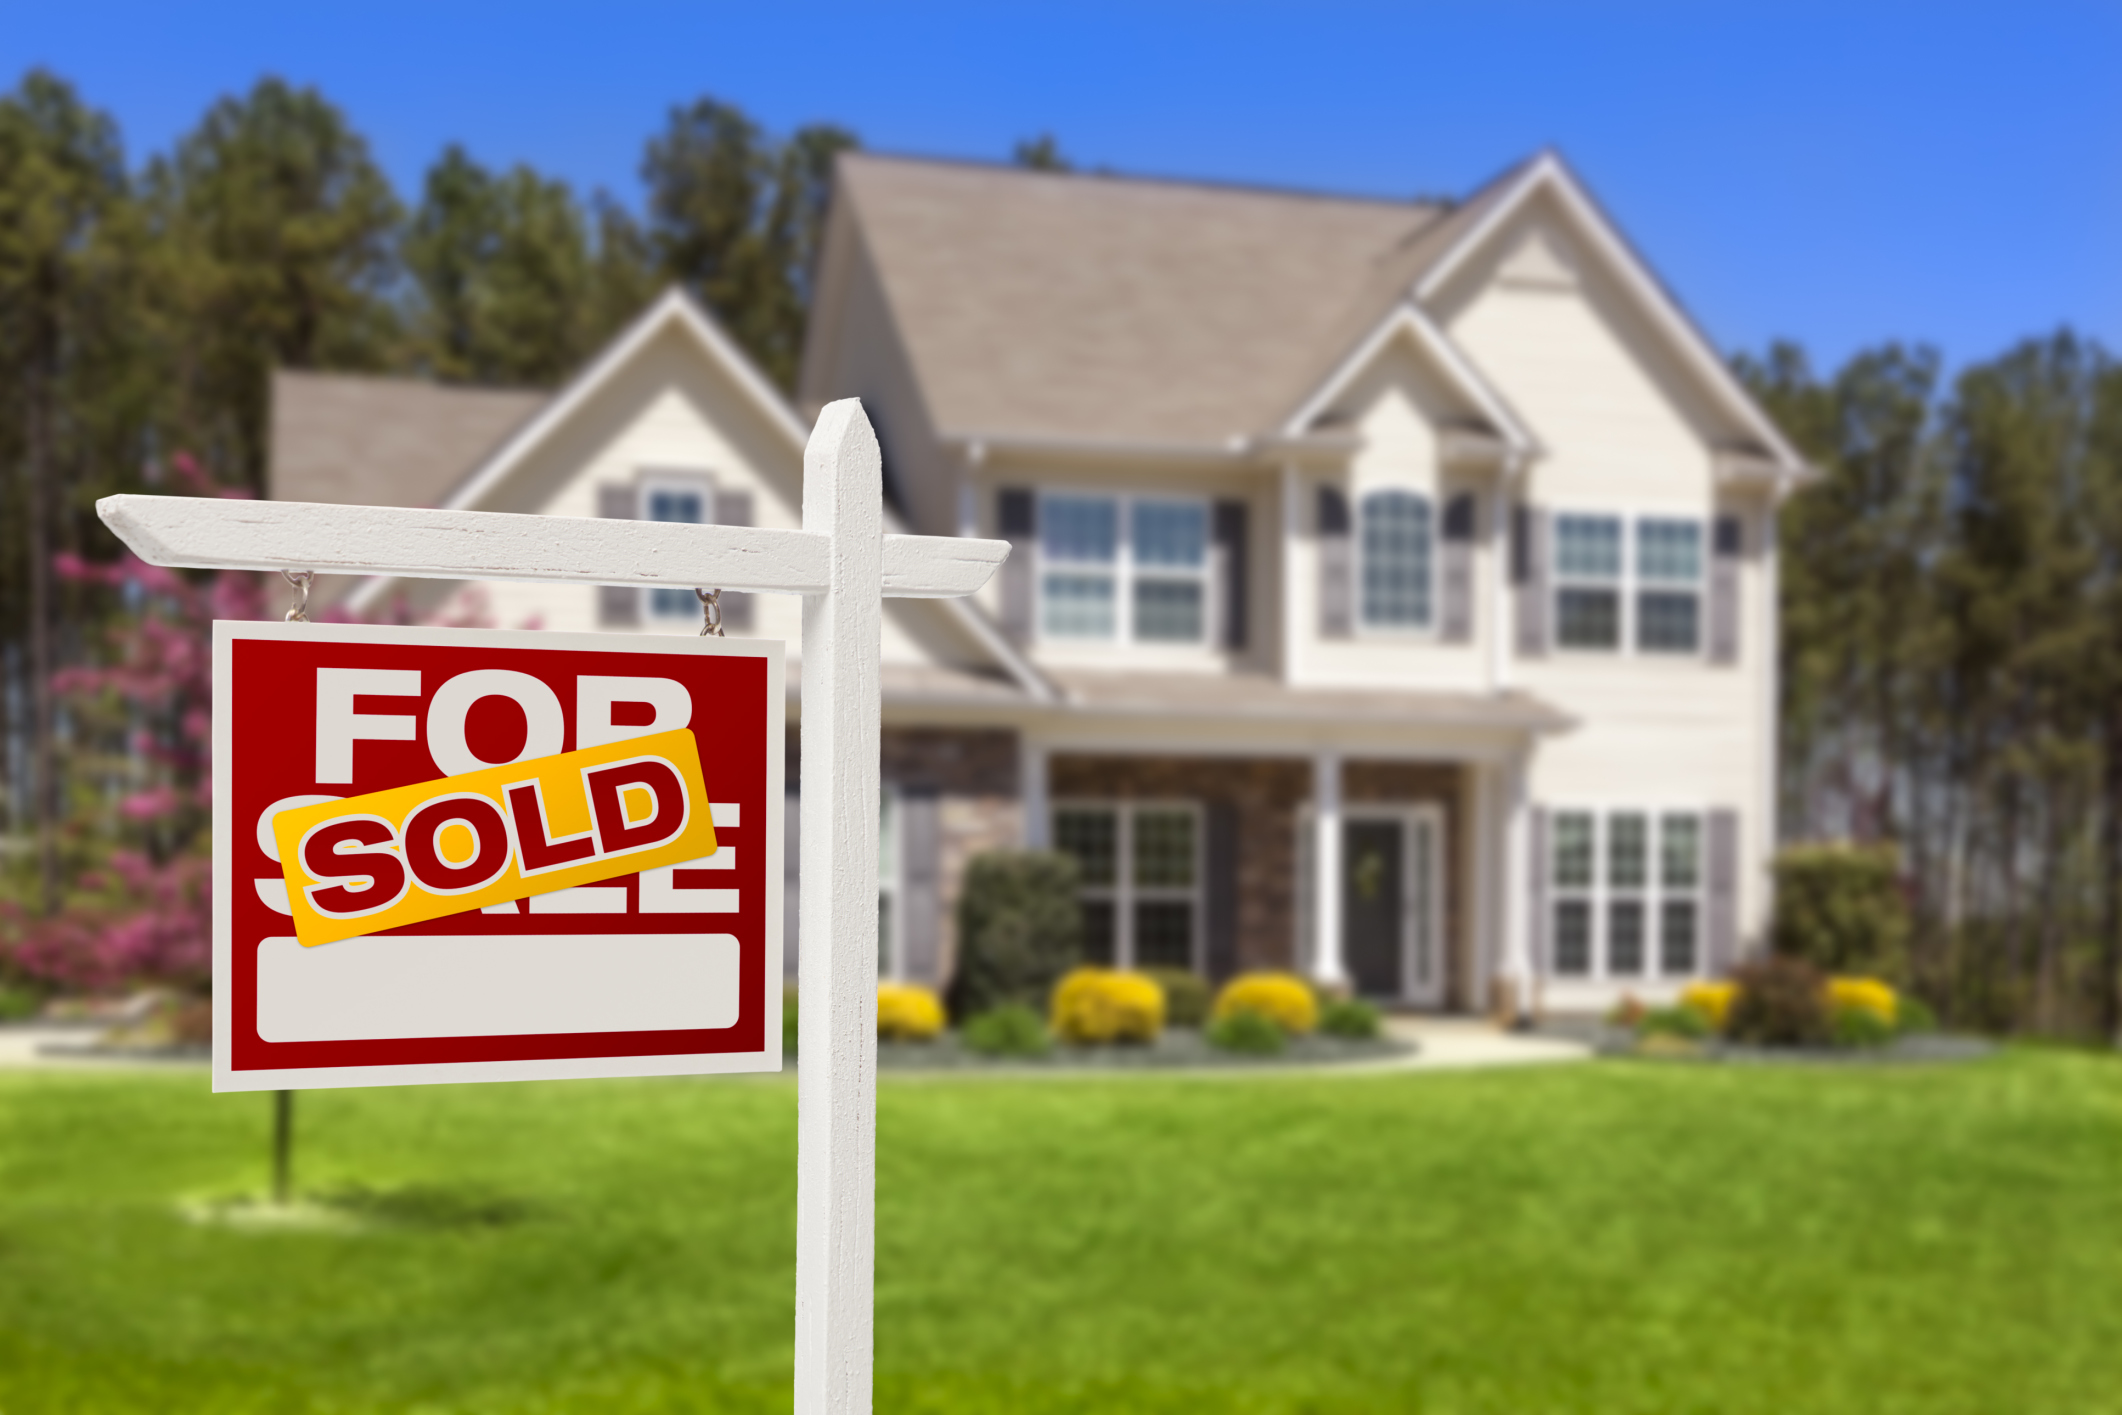 How Do You Buy Real Estate Using a Roth IRA?